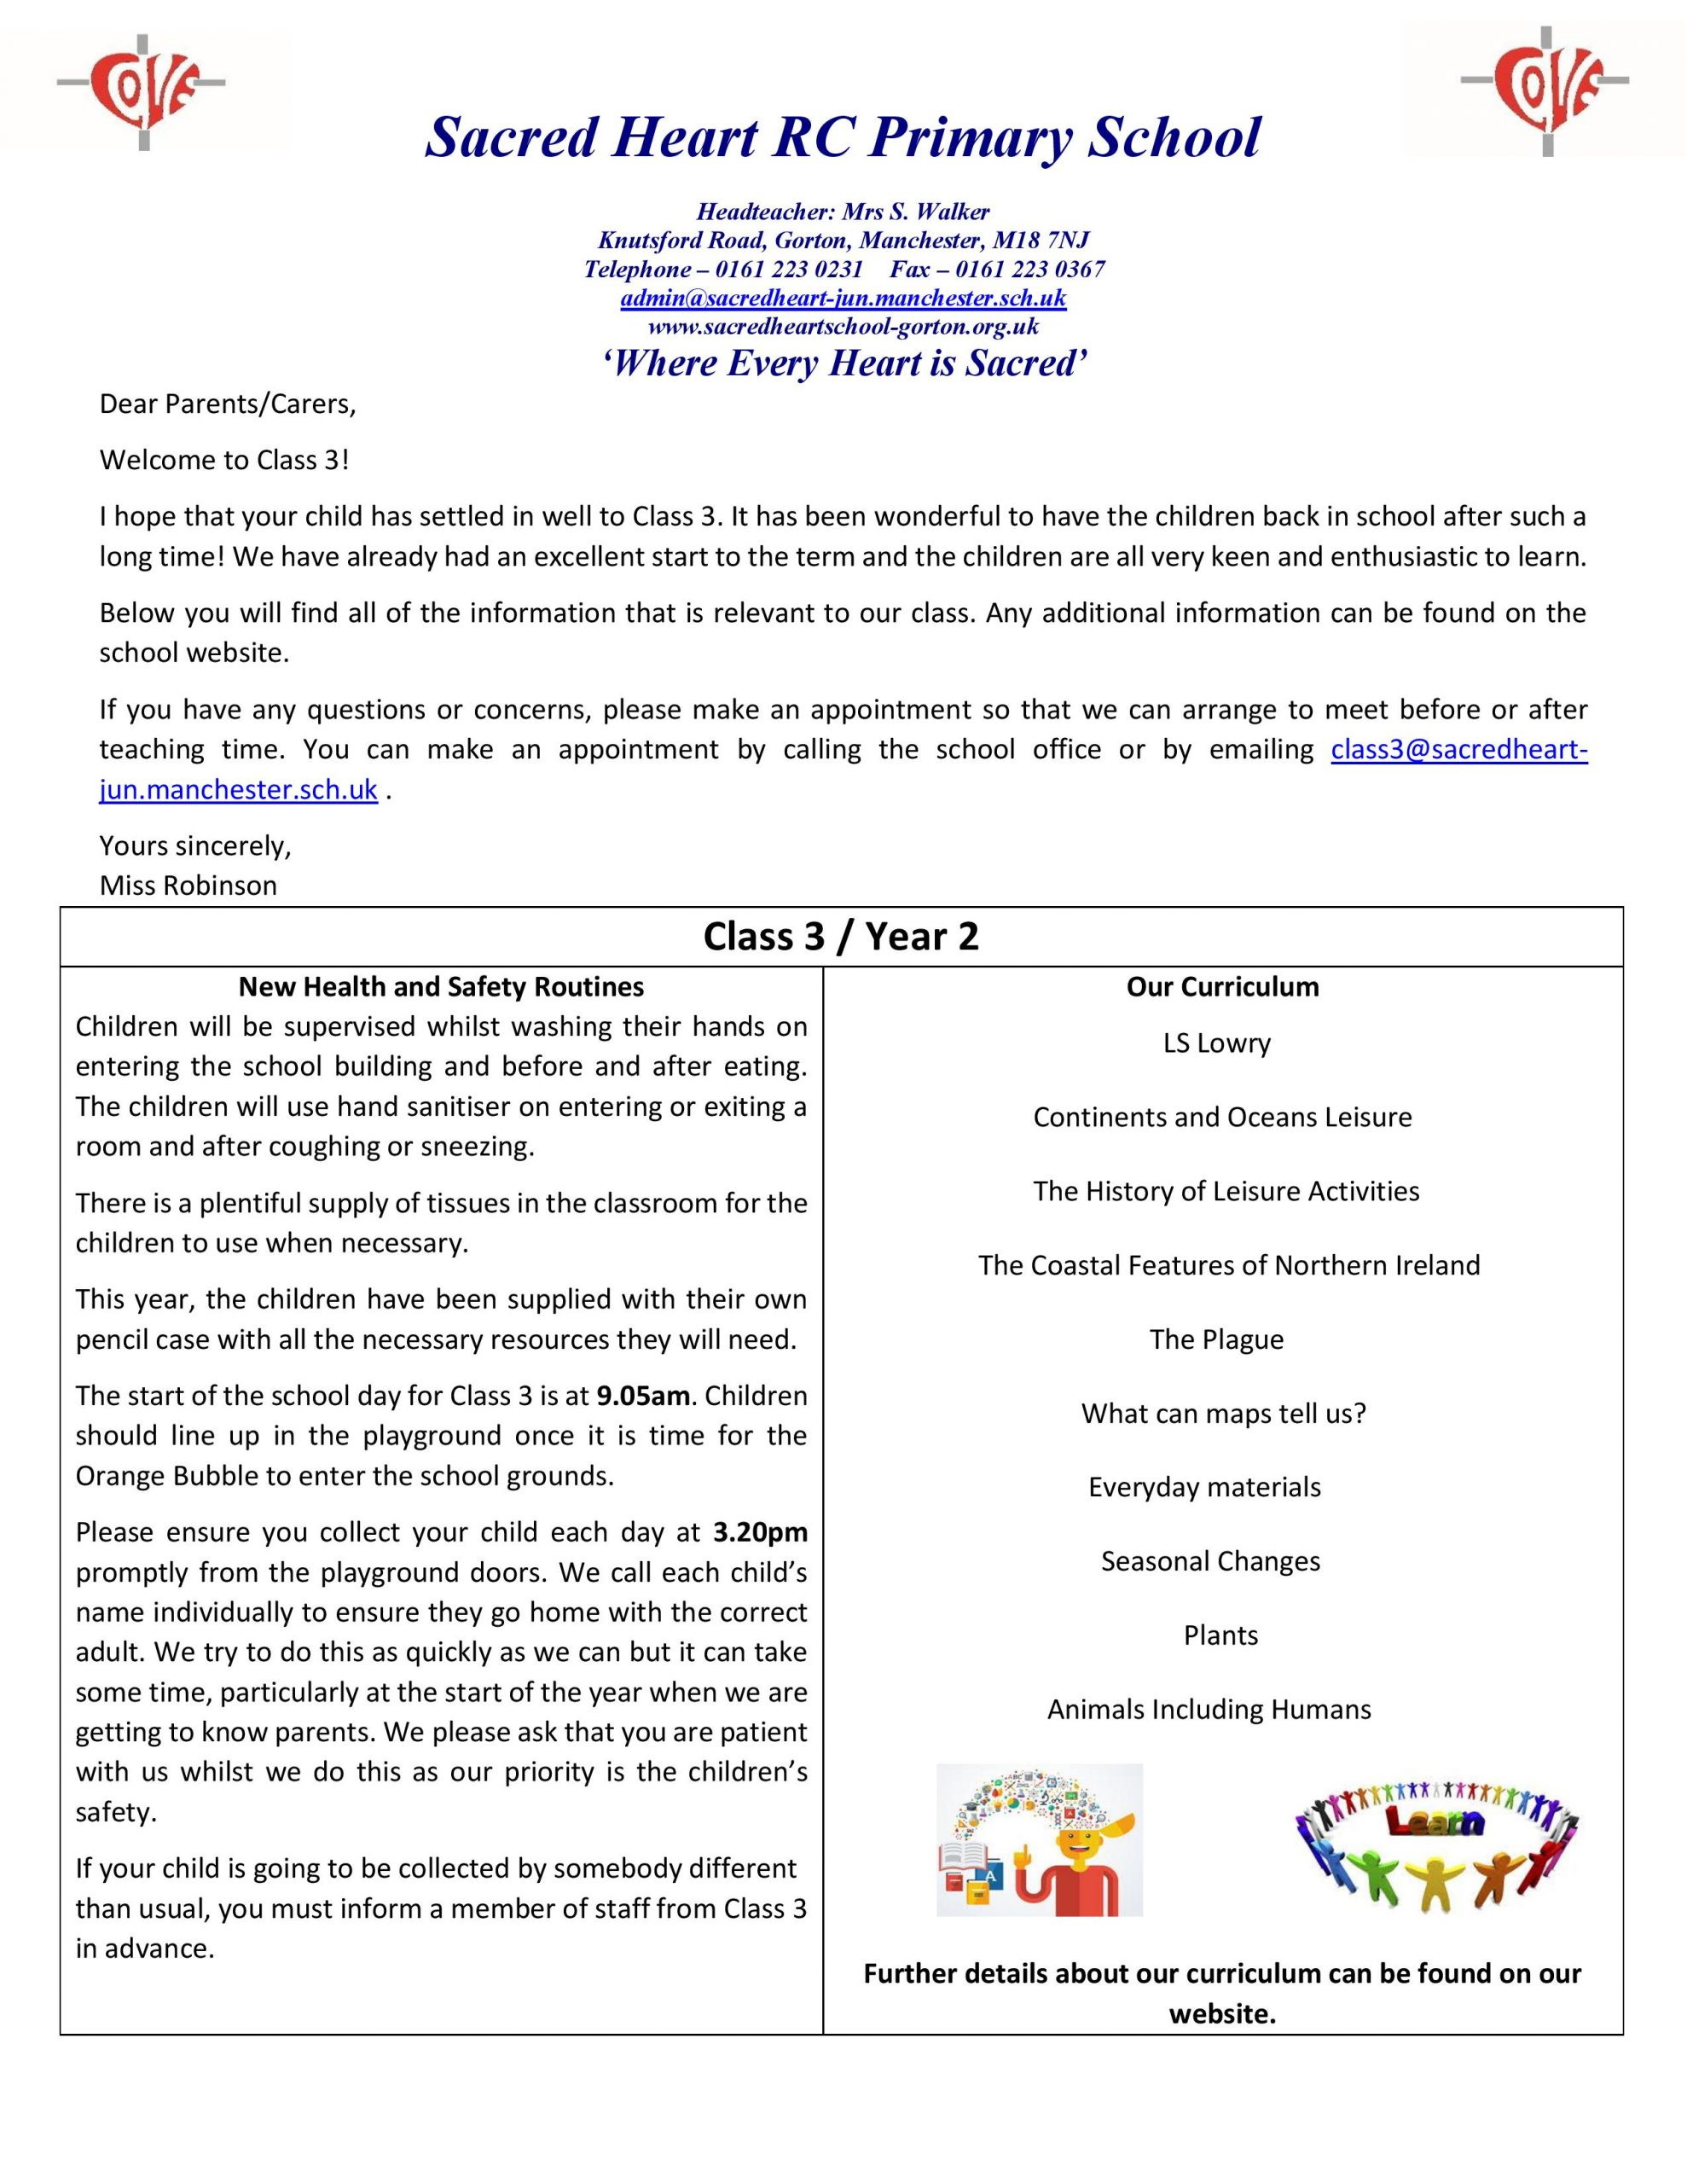 Class 3 Home Learning Guidance